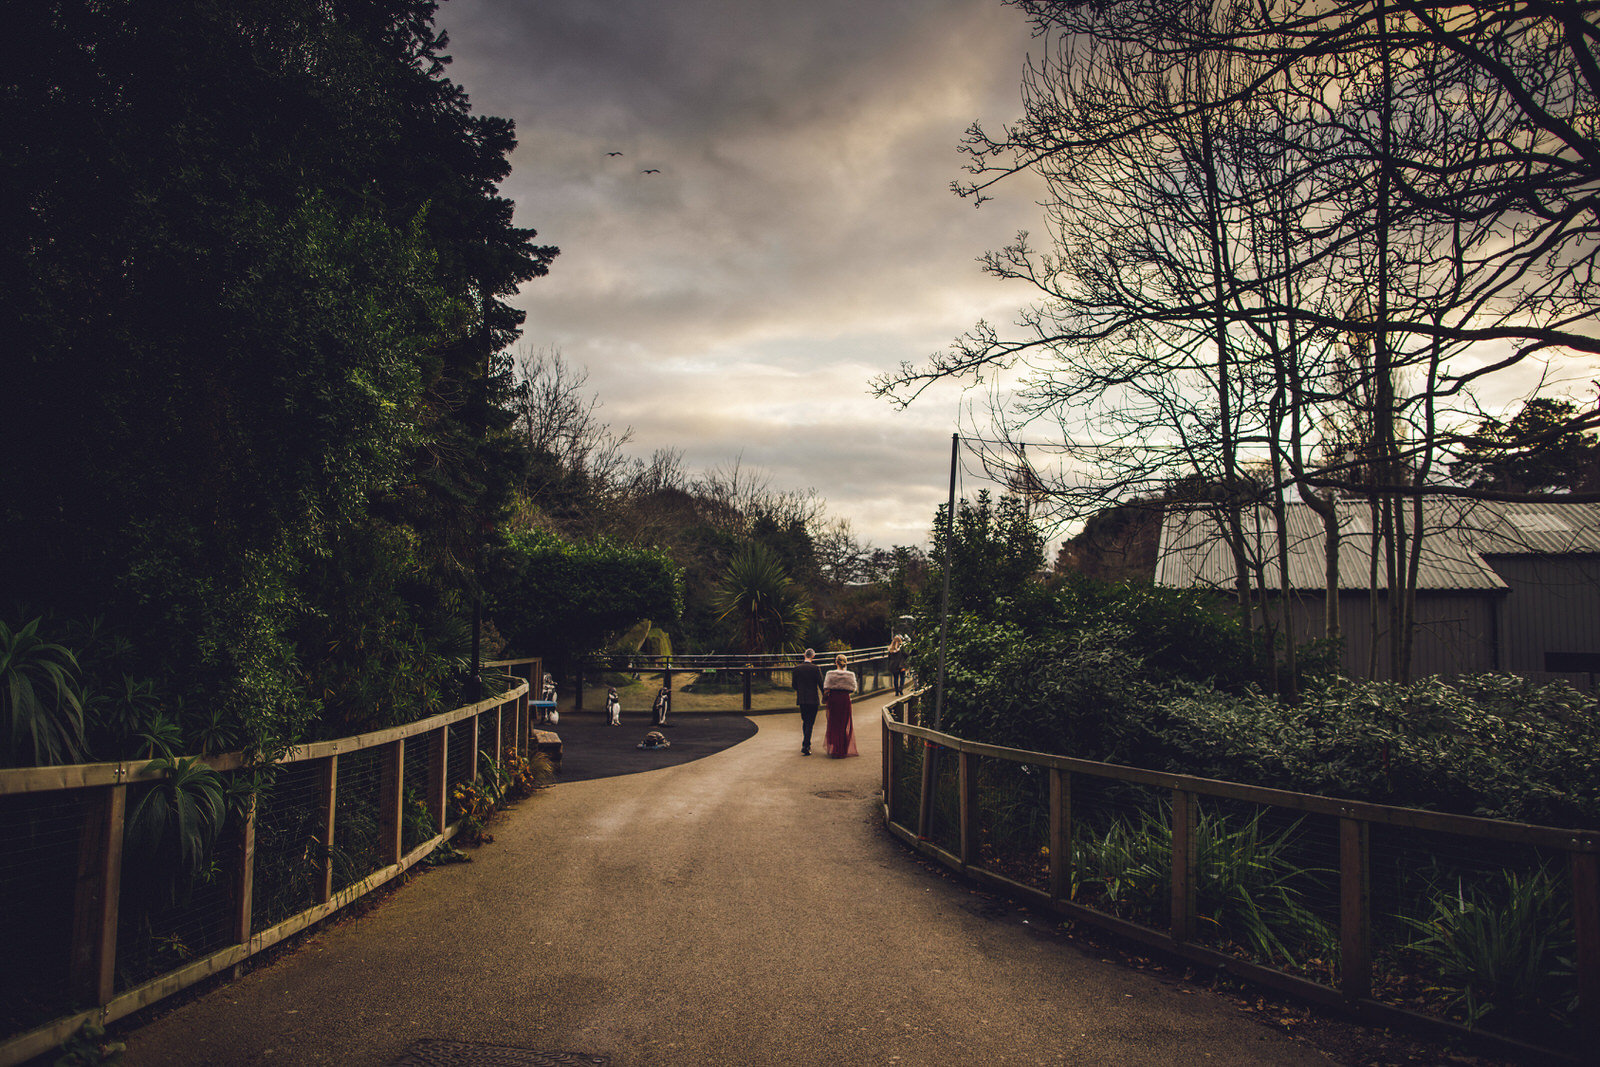 Roger_kenny-wedding-photographer-wicklow-dublin-zoo_136.jpg